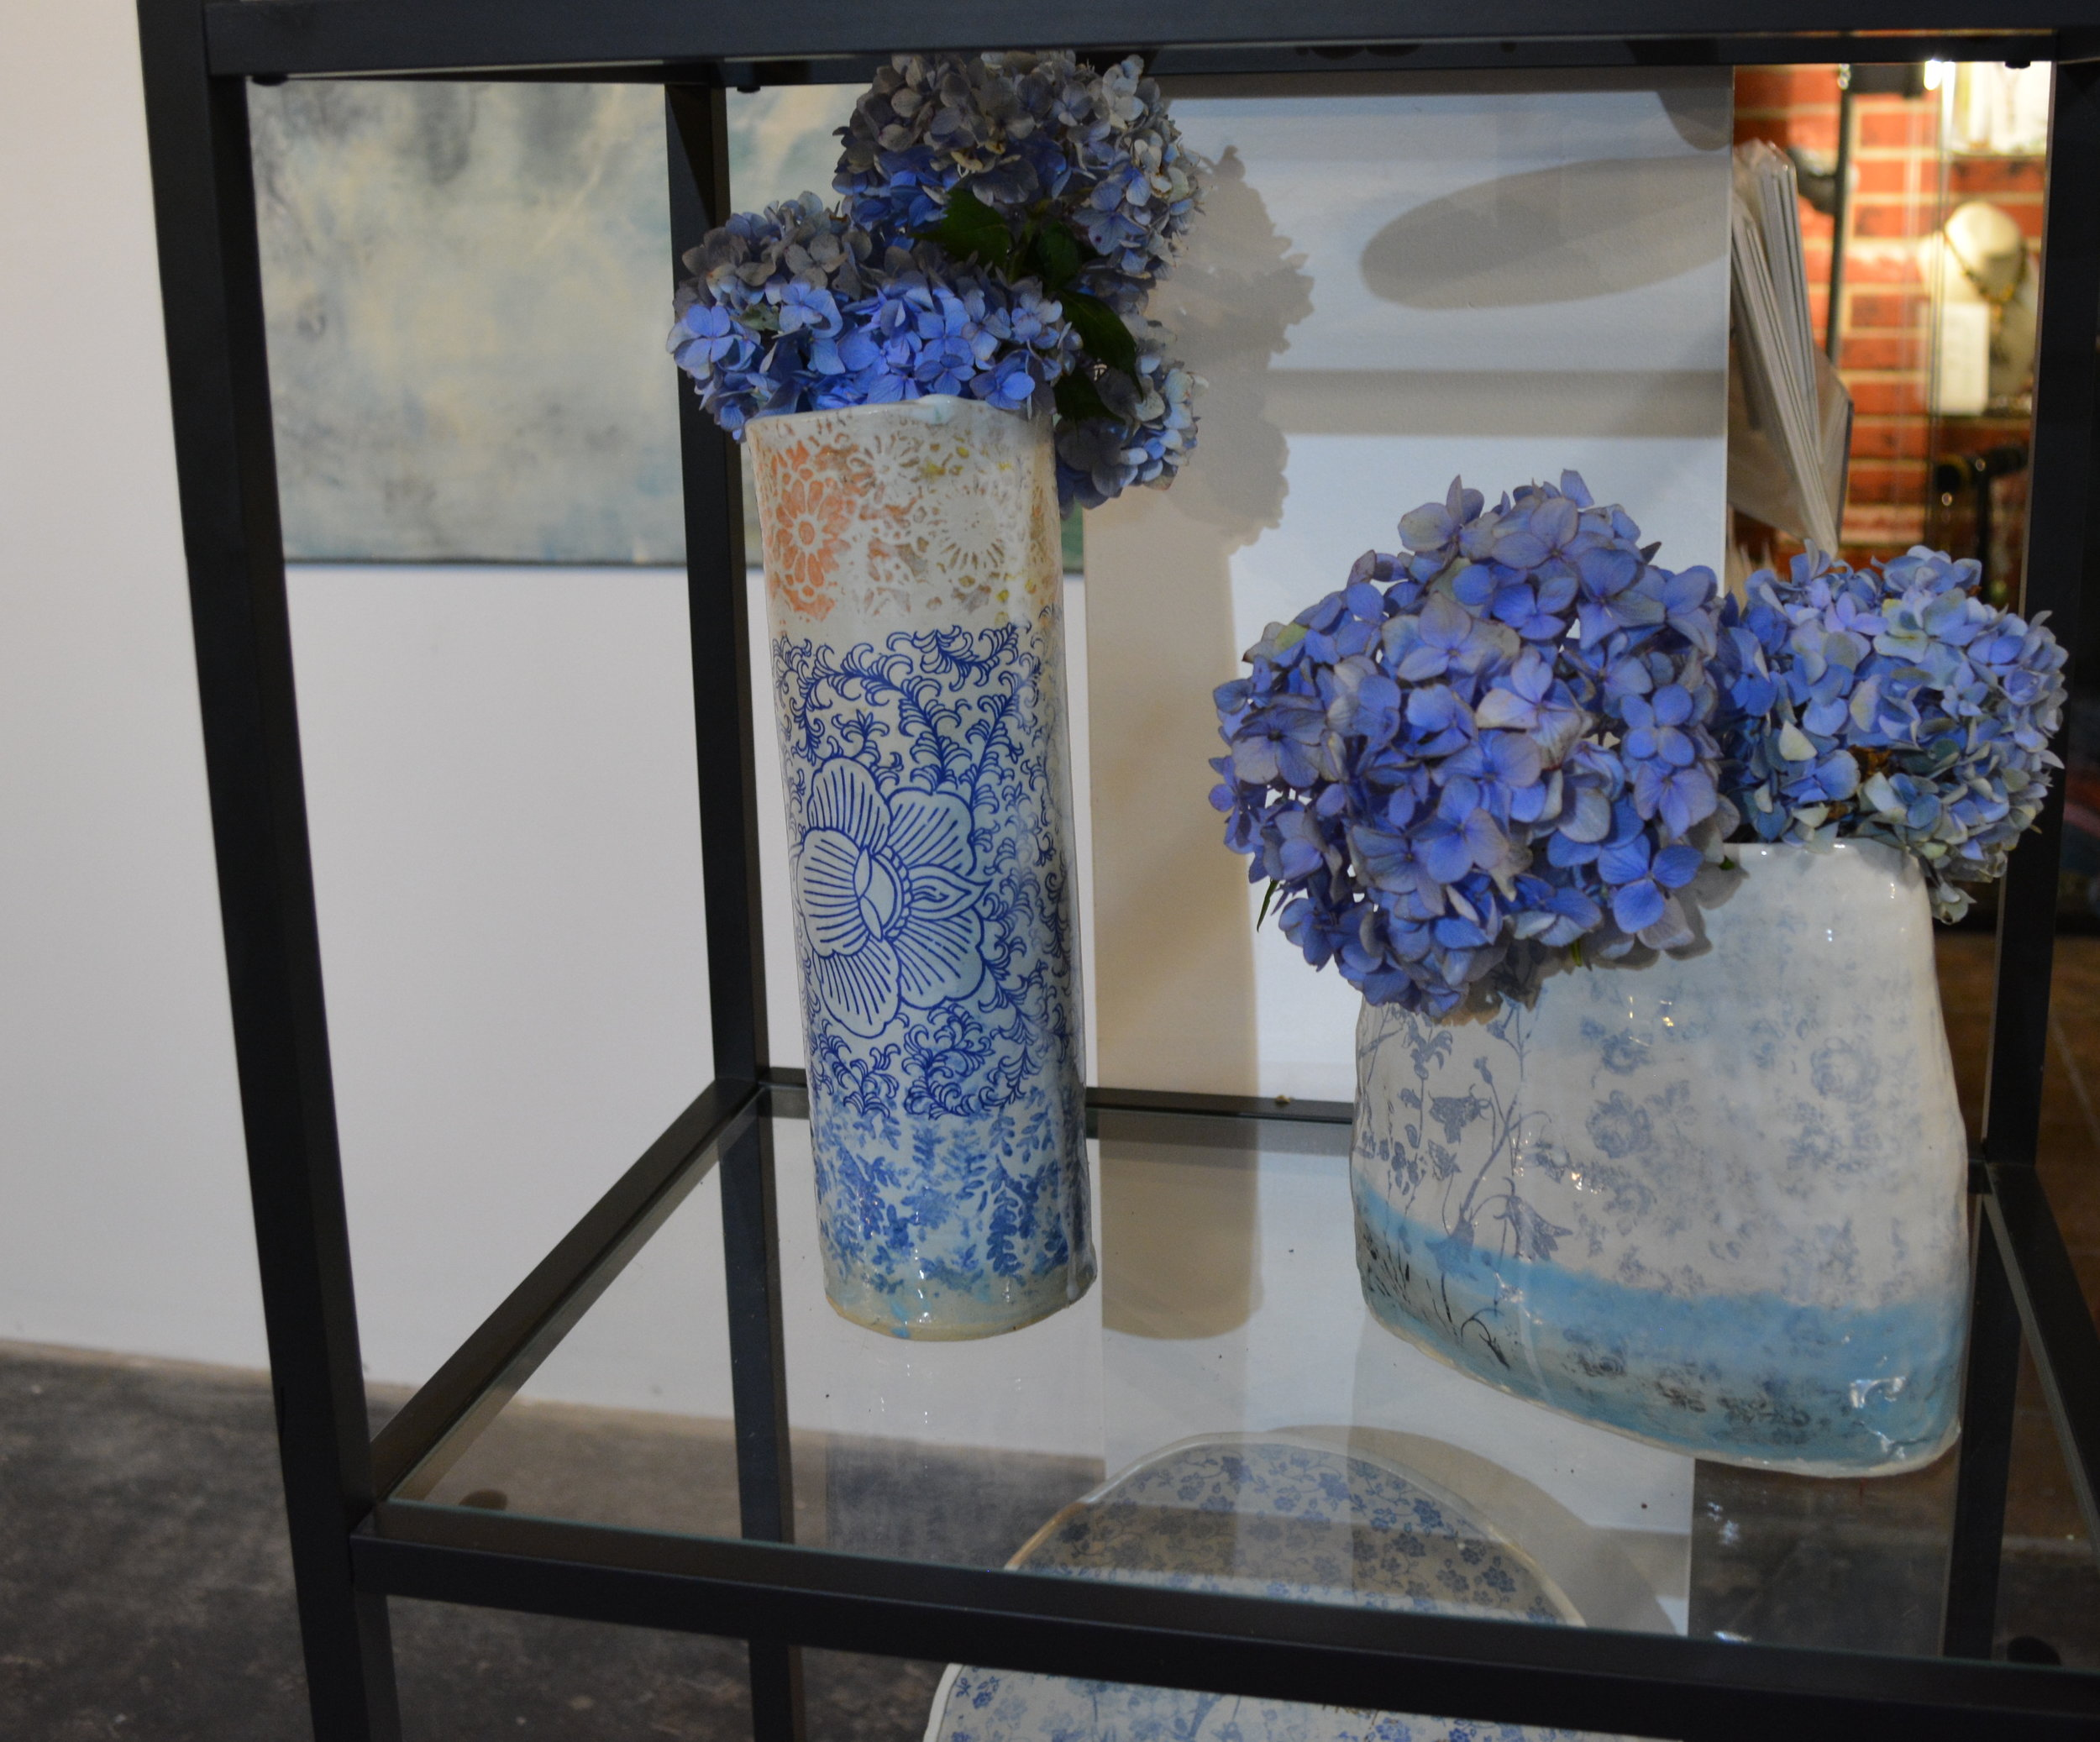 Lindsay Lousie McPhail - Slab built functional ceramic work often featuring floral patterns throughout in blue, white and red.. Vases, dishes, ornaments, mugs, and wall hangings,